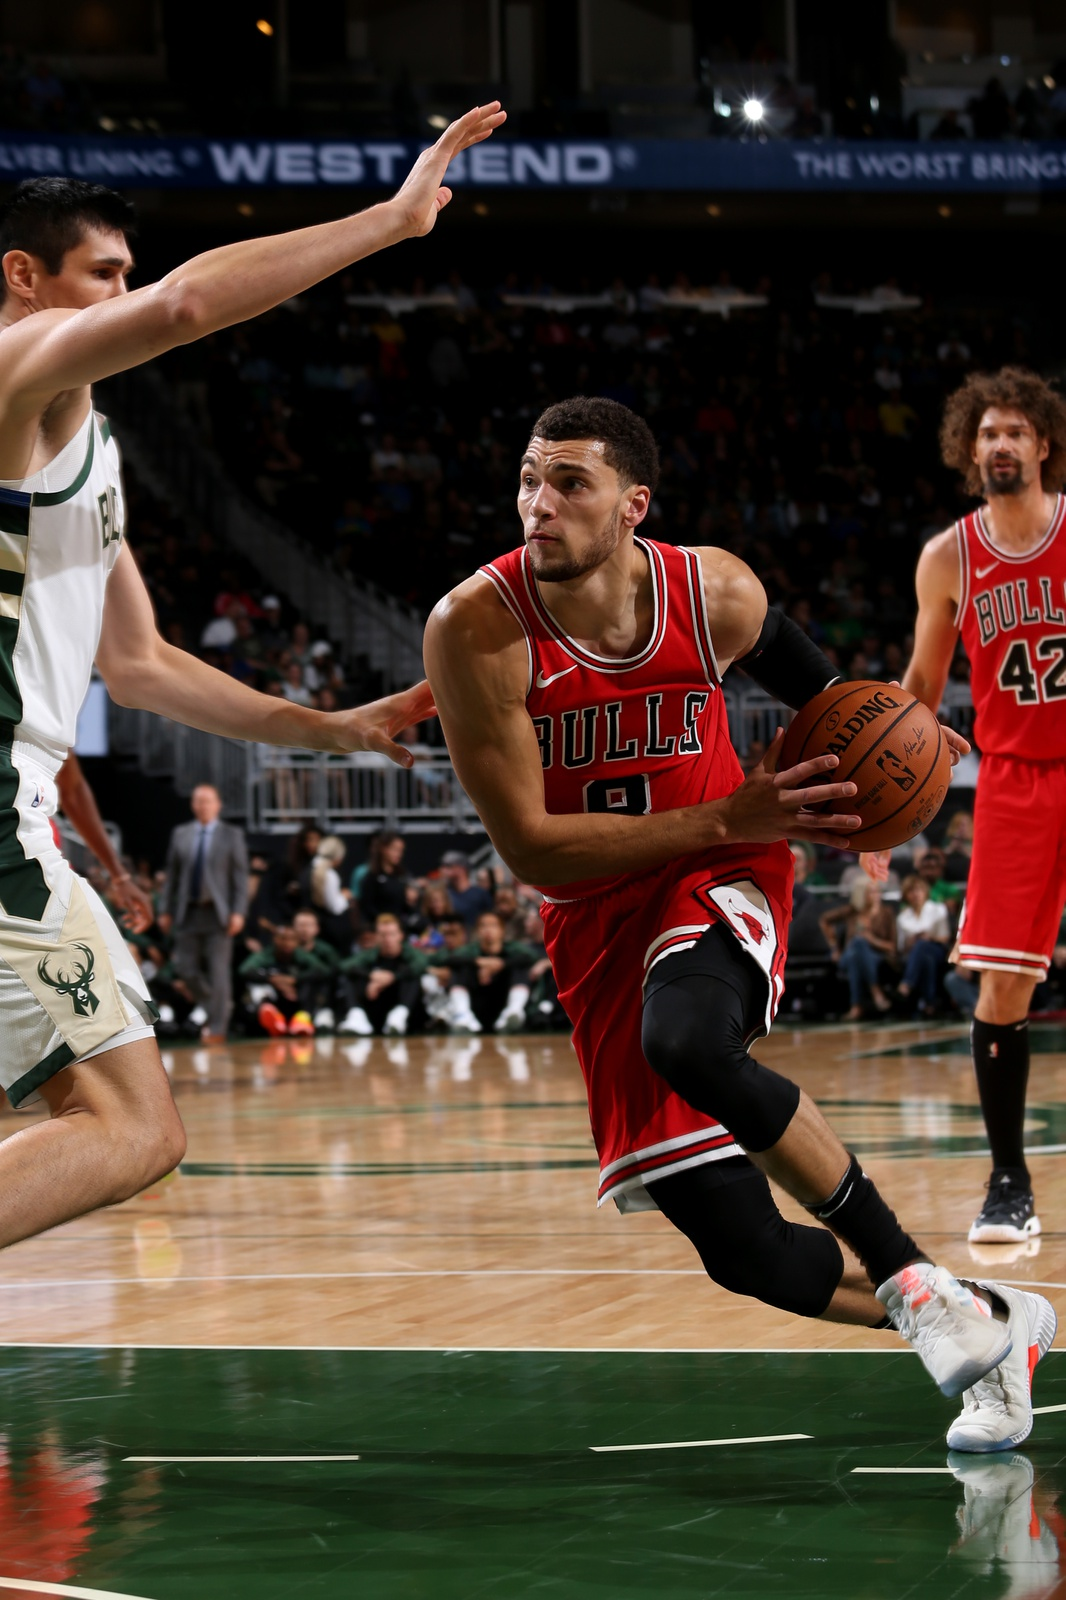 ach LaVine #8 of the Chicago Bulls drives to the basket against the Milwaukee Bucks during a pre-season game on October 3, 2018 at Fiserv Forum, in Milwaukee, Wisconsin